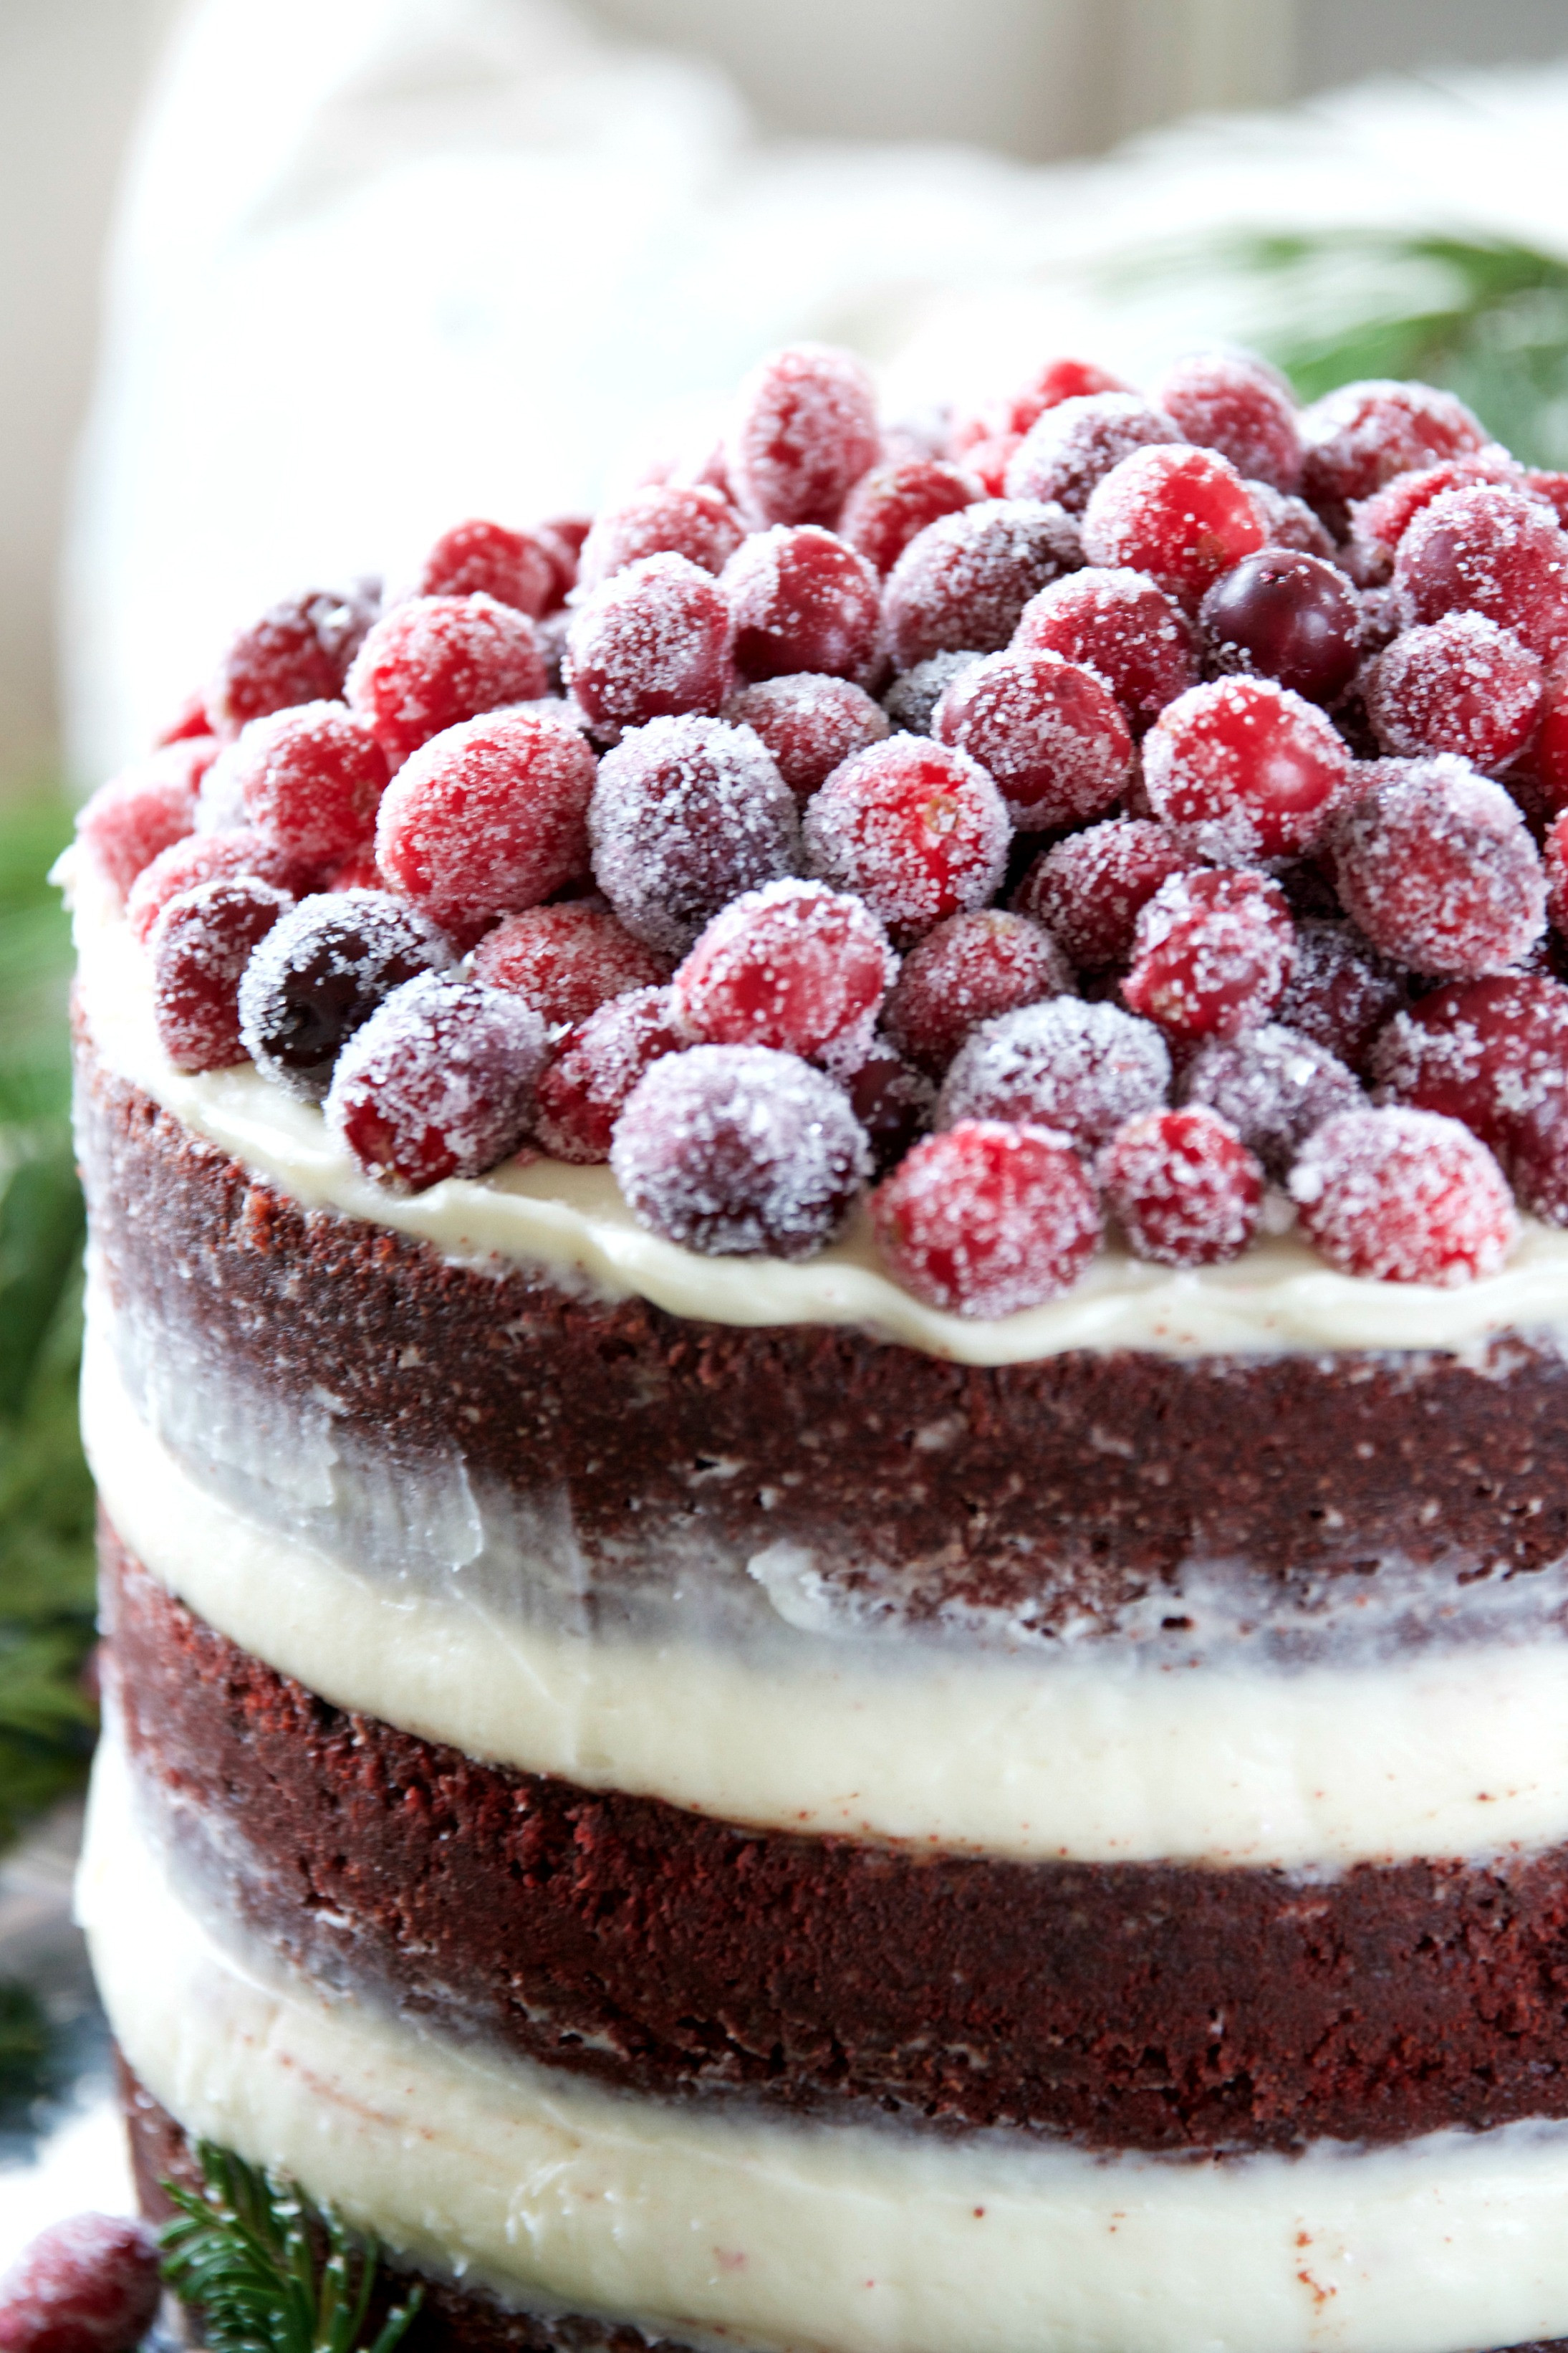 Cream Cheese Frosting For Red Velvet Cake  Naked Red Velvet Layer Cake with Cream Cheese Frosting and